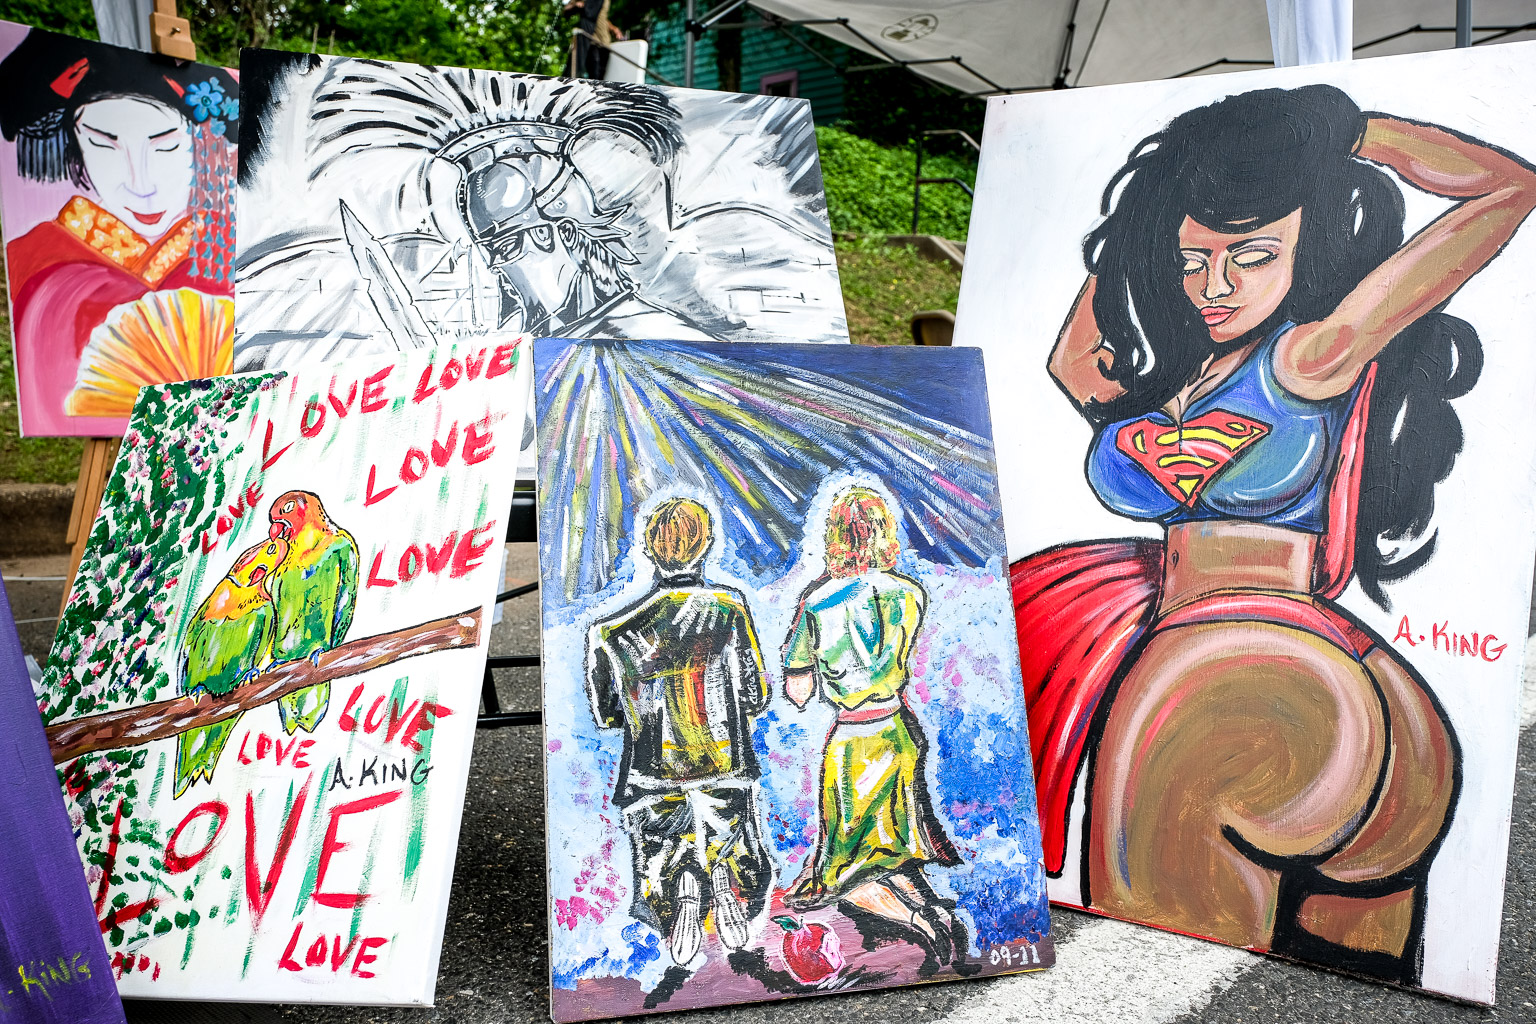 Some of King's work from the Mount Rainier Day festival back in May. Some of these may still be available for purchase.